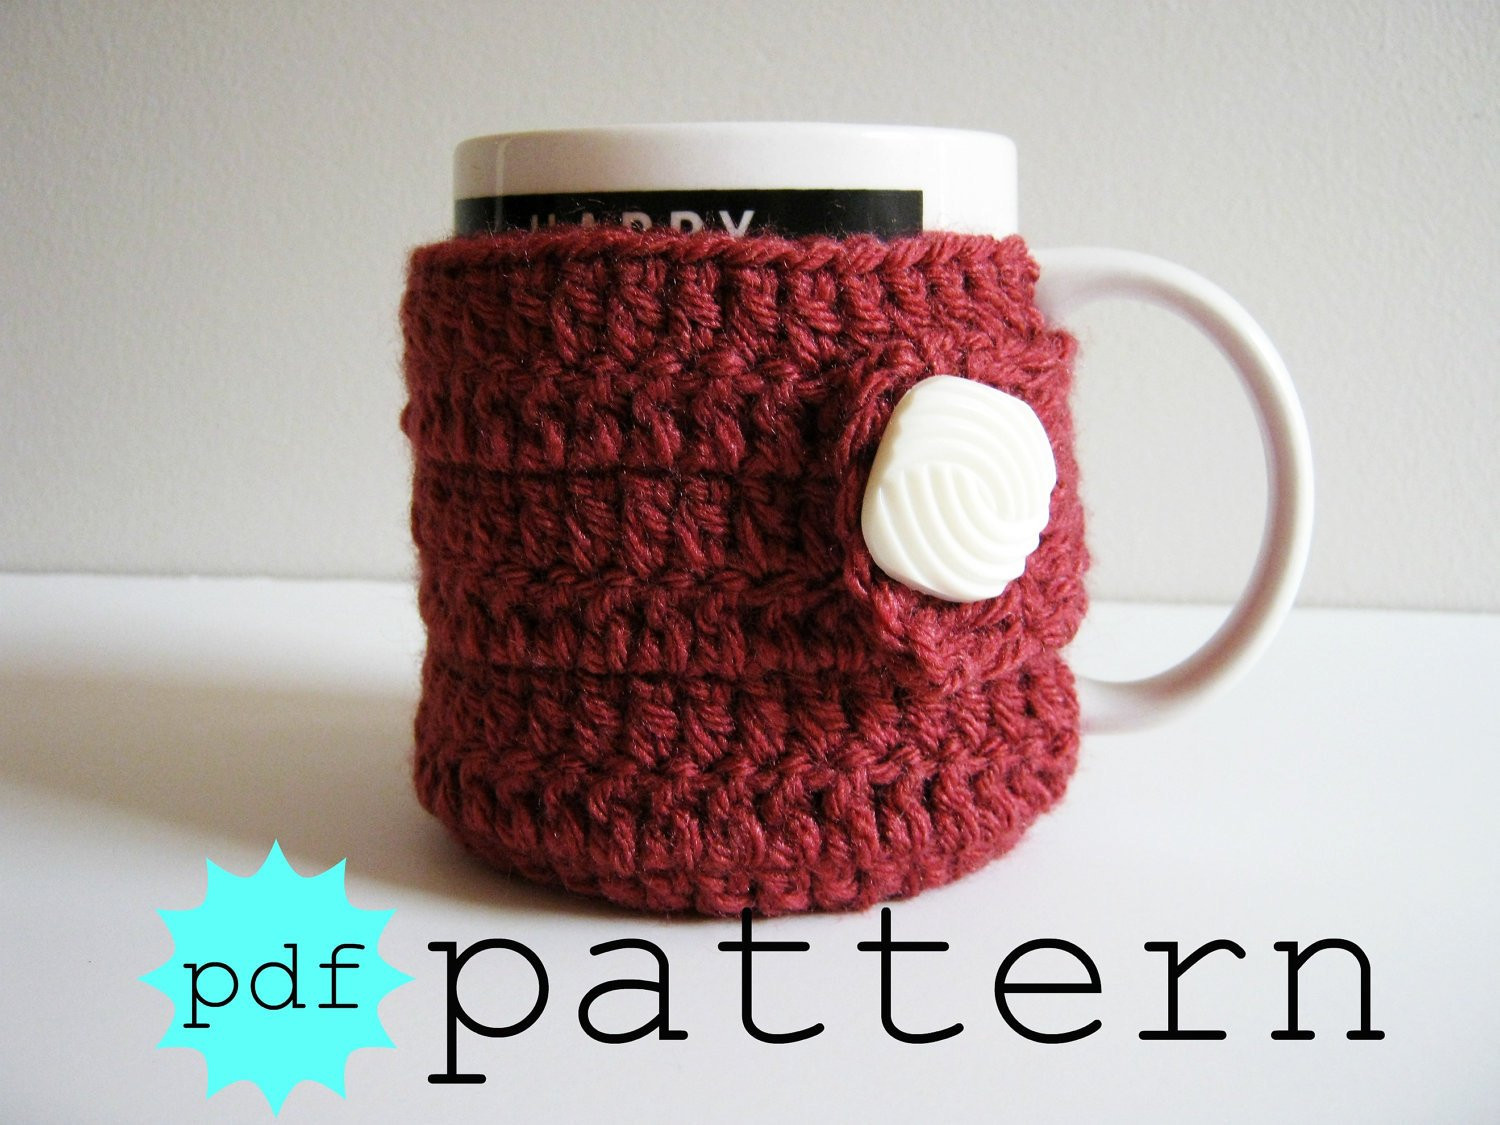 Crochet Coffee Cup Cozy Luxury Pdf Crochet Pattern Coffee Mug Cozy with button by Of Crochet Coffee Cup Cozy Inspirational 35 Easy Crochet Patterns